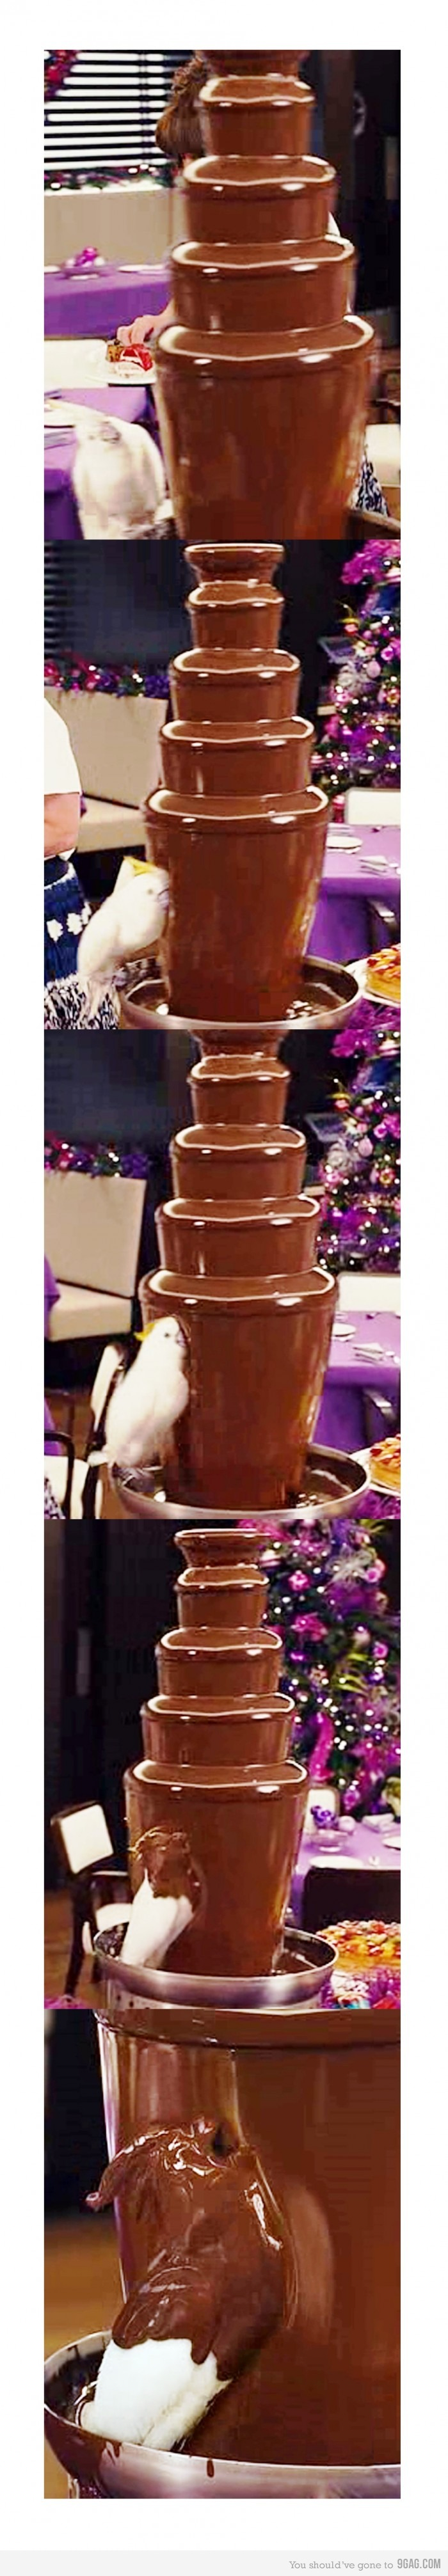 Chocolate addicted parrot...